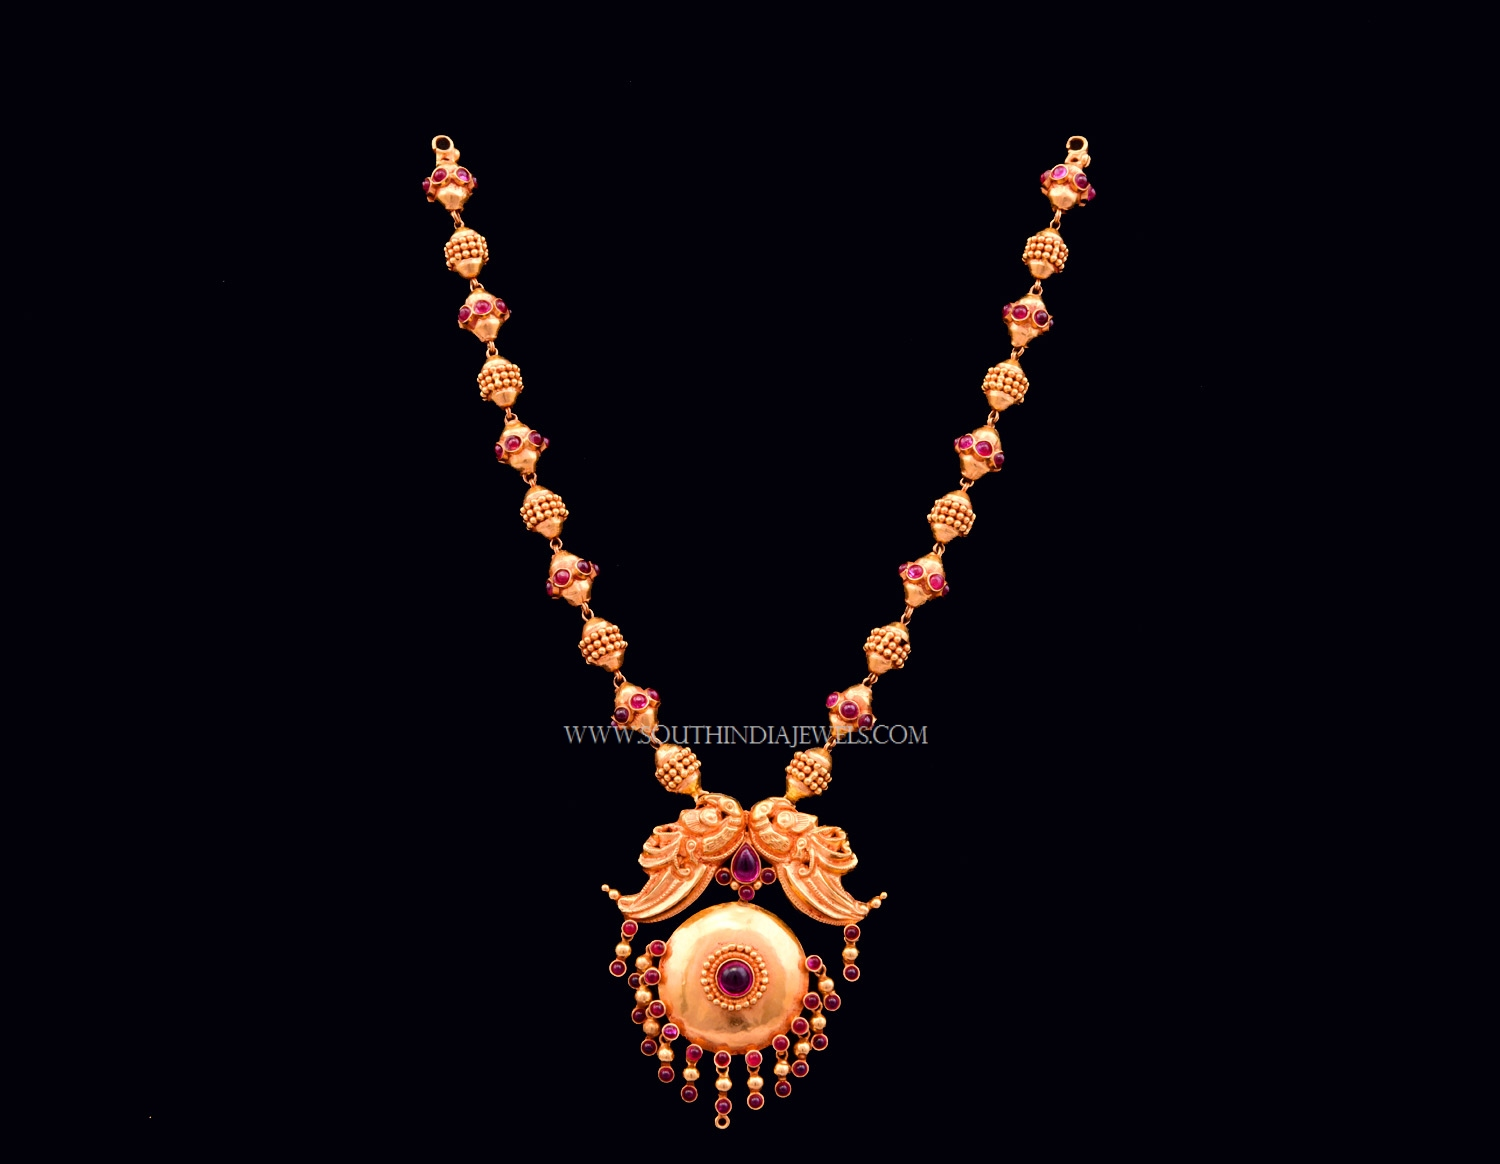 8a39af61b49c0 Gold Antique Beaded Necklace from Bhima ~ South India Jewels